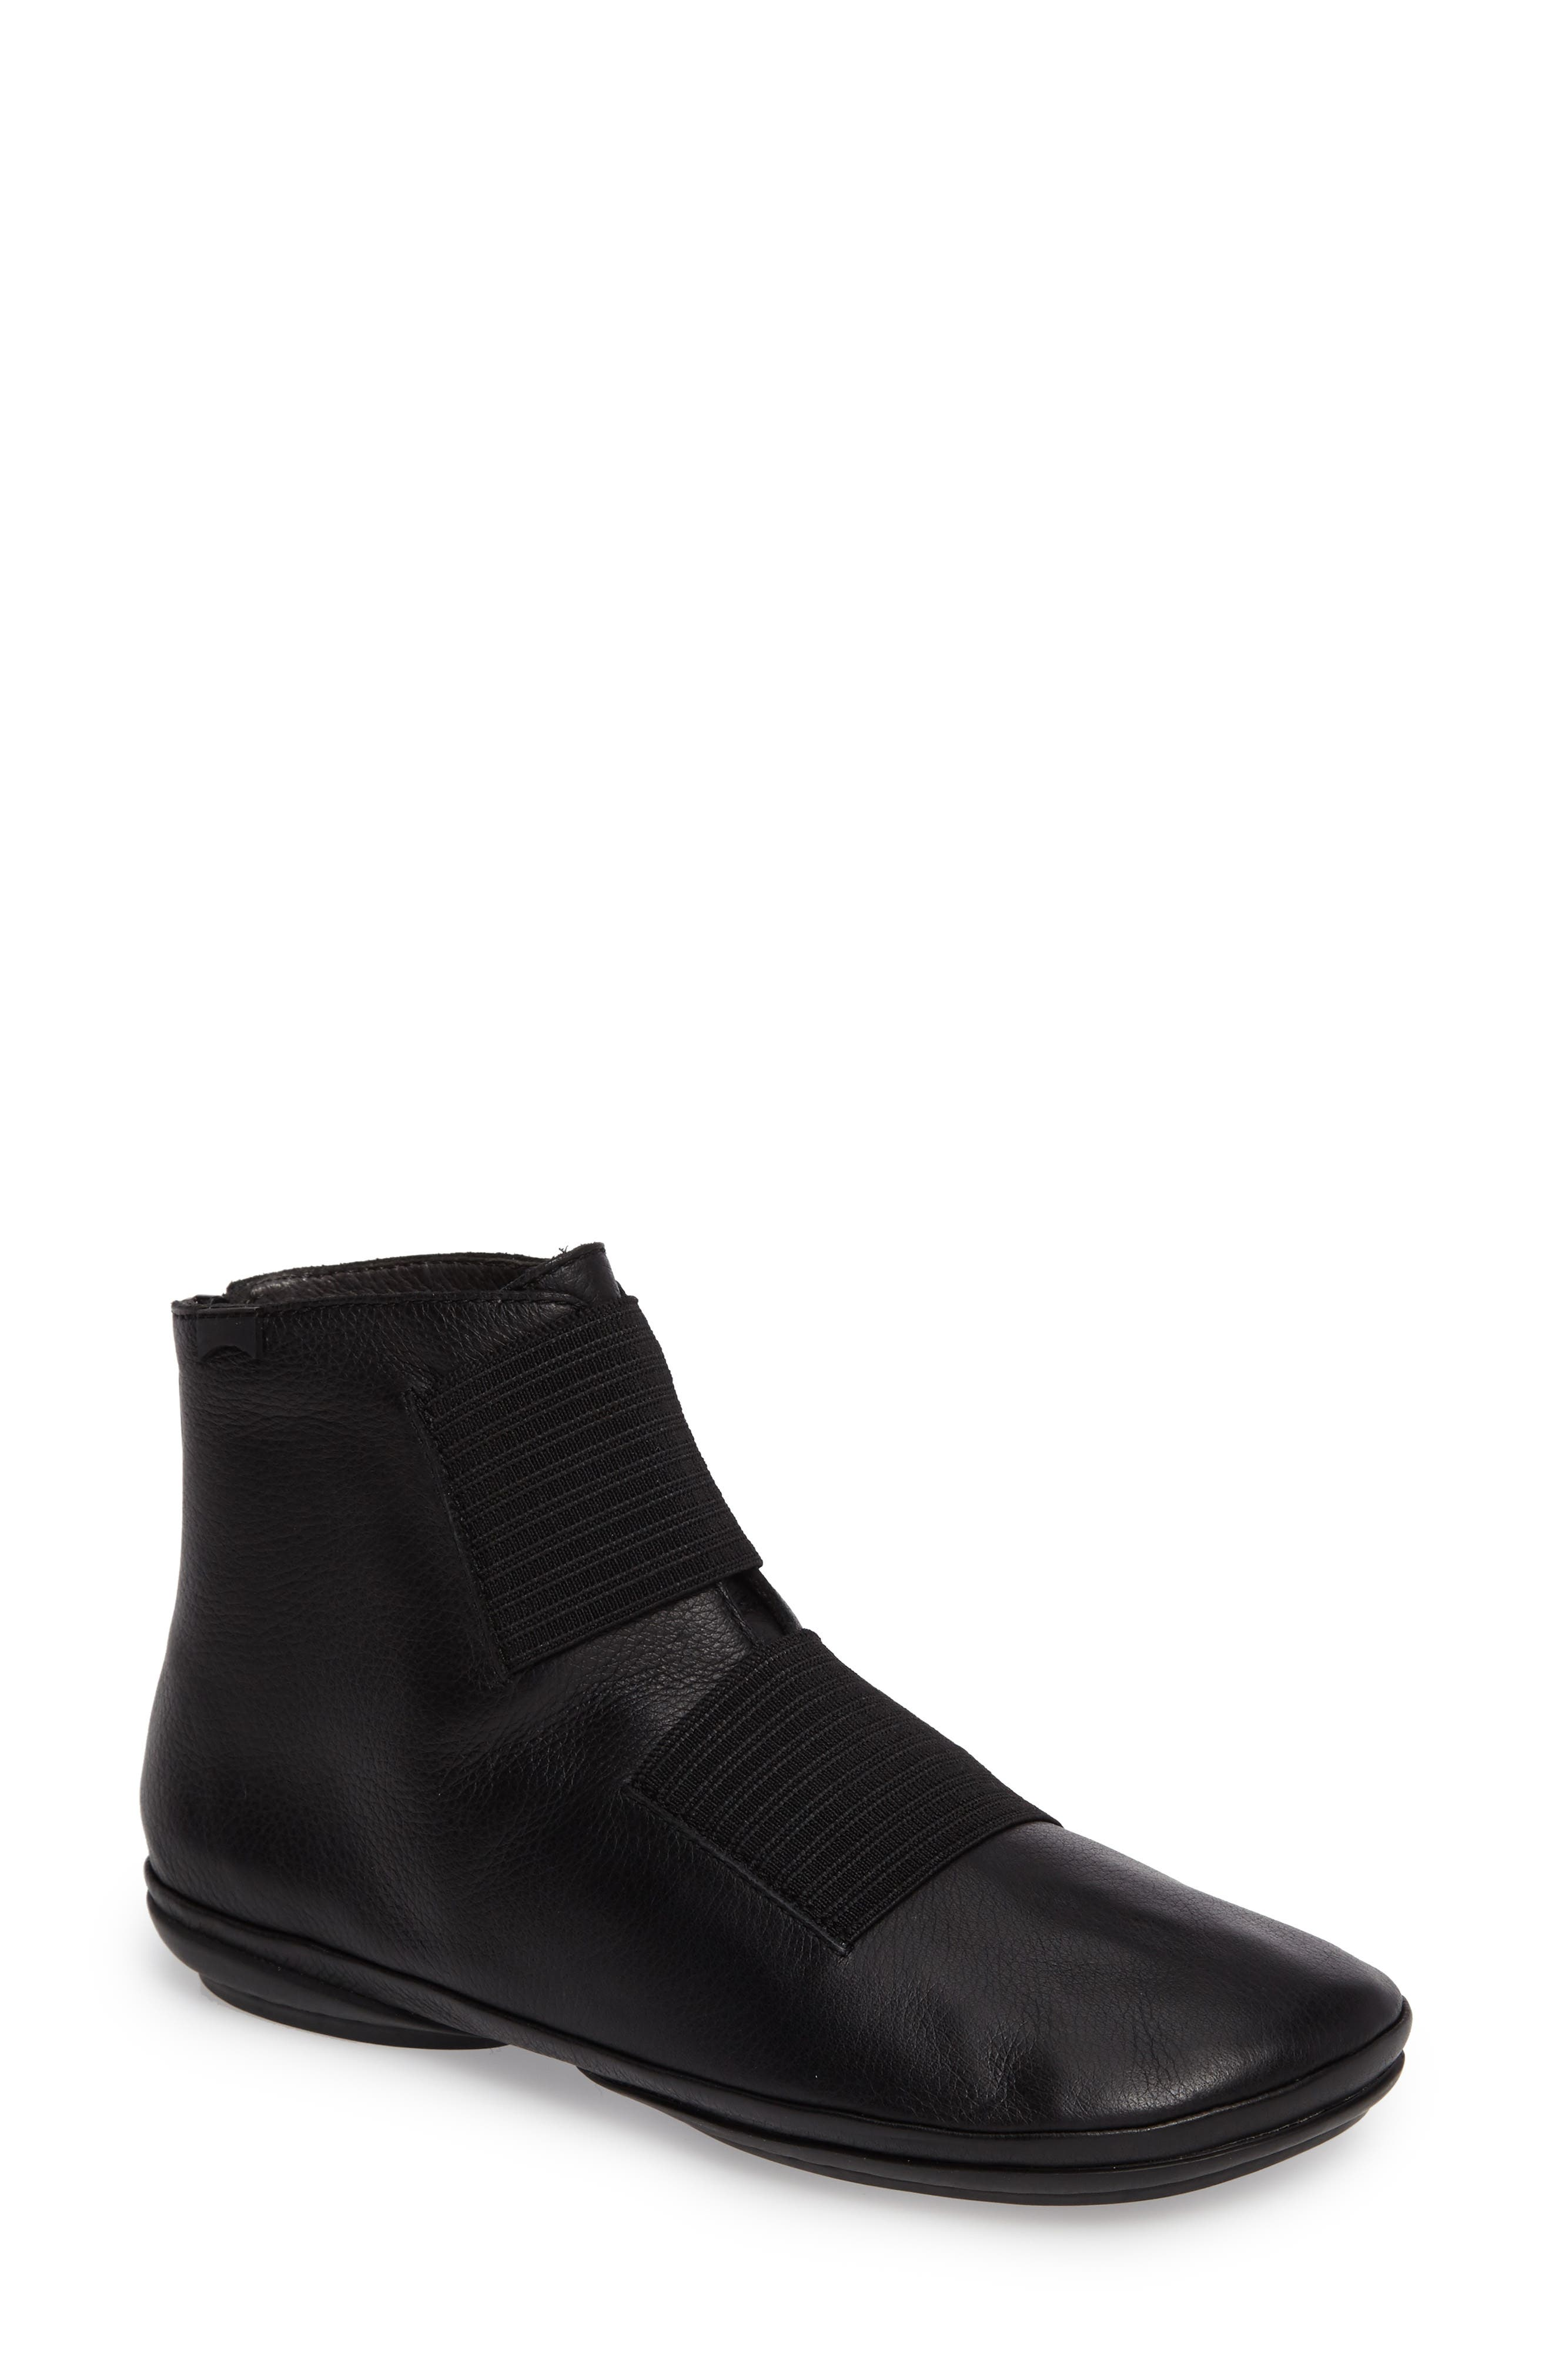 'Right Nina' Bootie,                         Main,                         color, 001